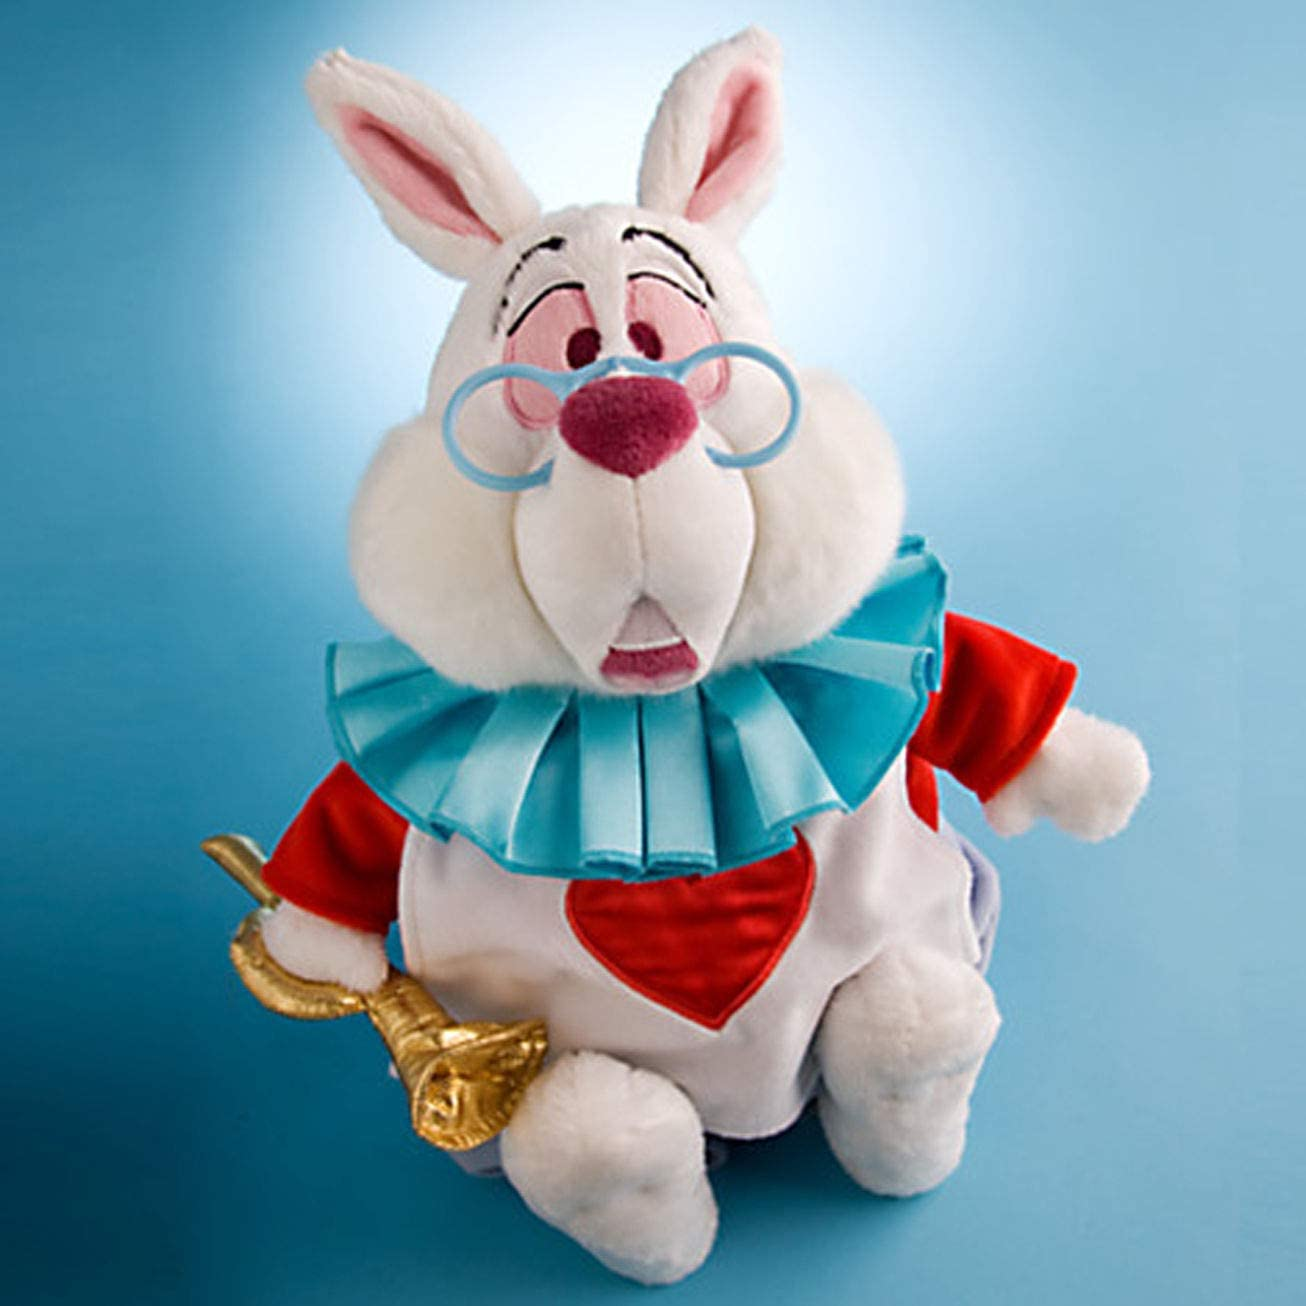 B0038AF6W6 Disney Alice In Wonderland Exclusive 15 Inch Deluxe Plush Figure White Rabbit 41U7BX5x5AL.